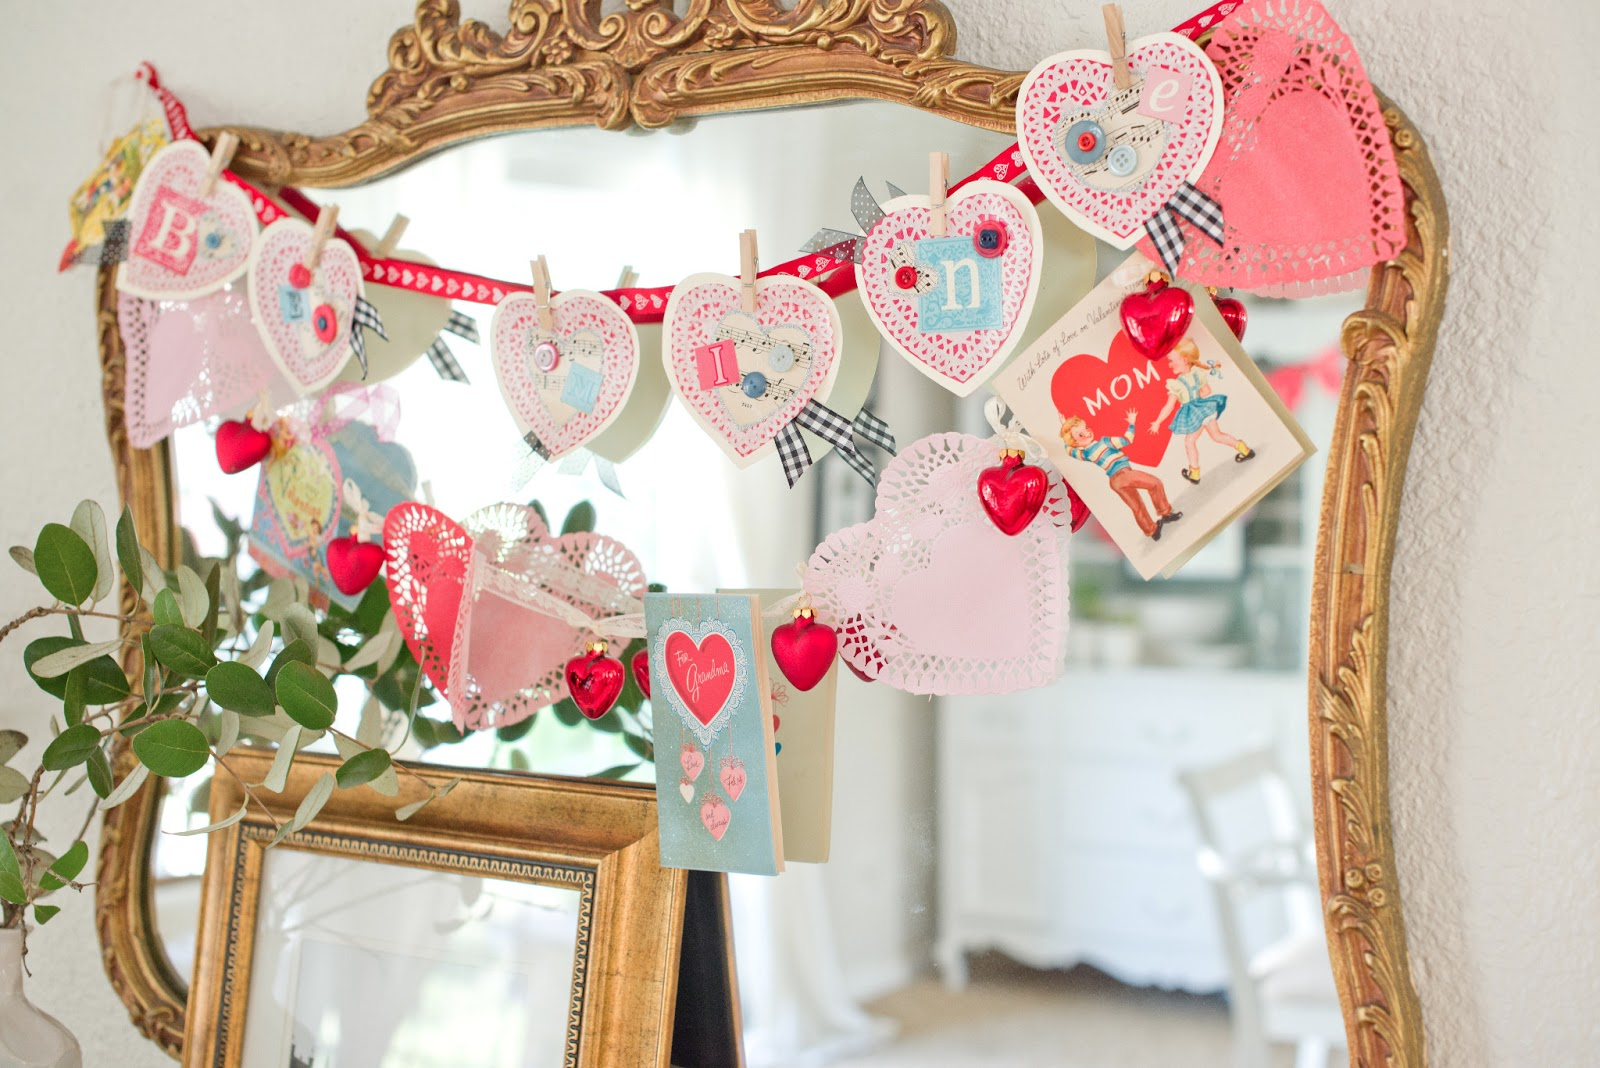 Domestic fashionista vintage and handmade inspired for Home decorations for valentine s day